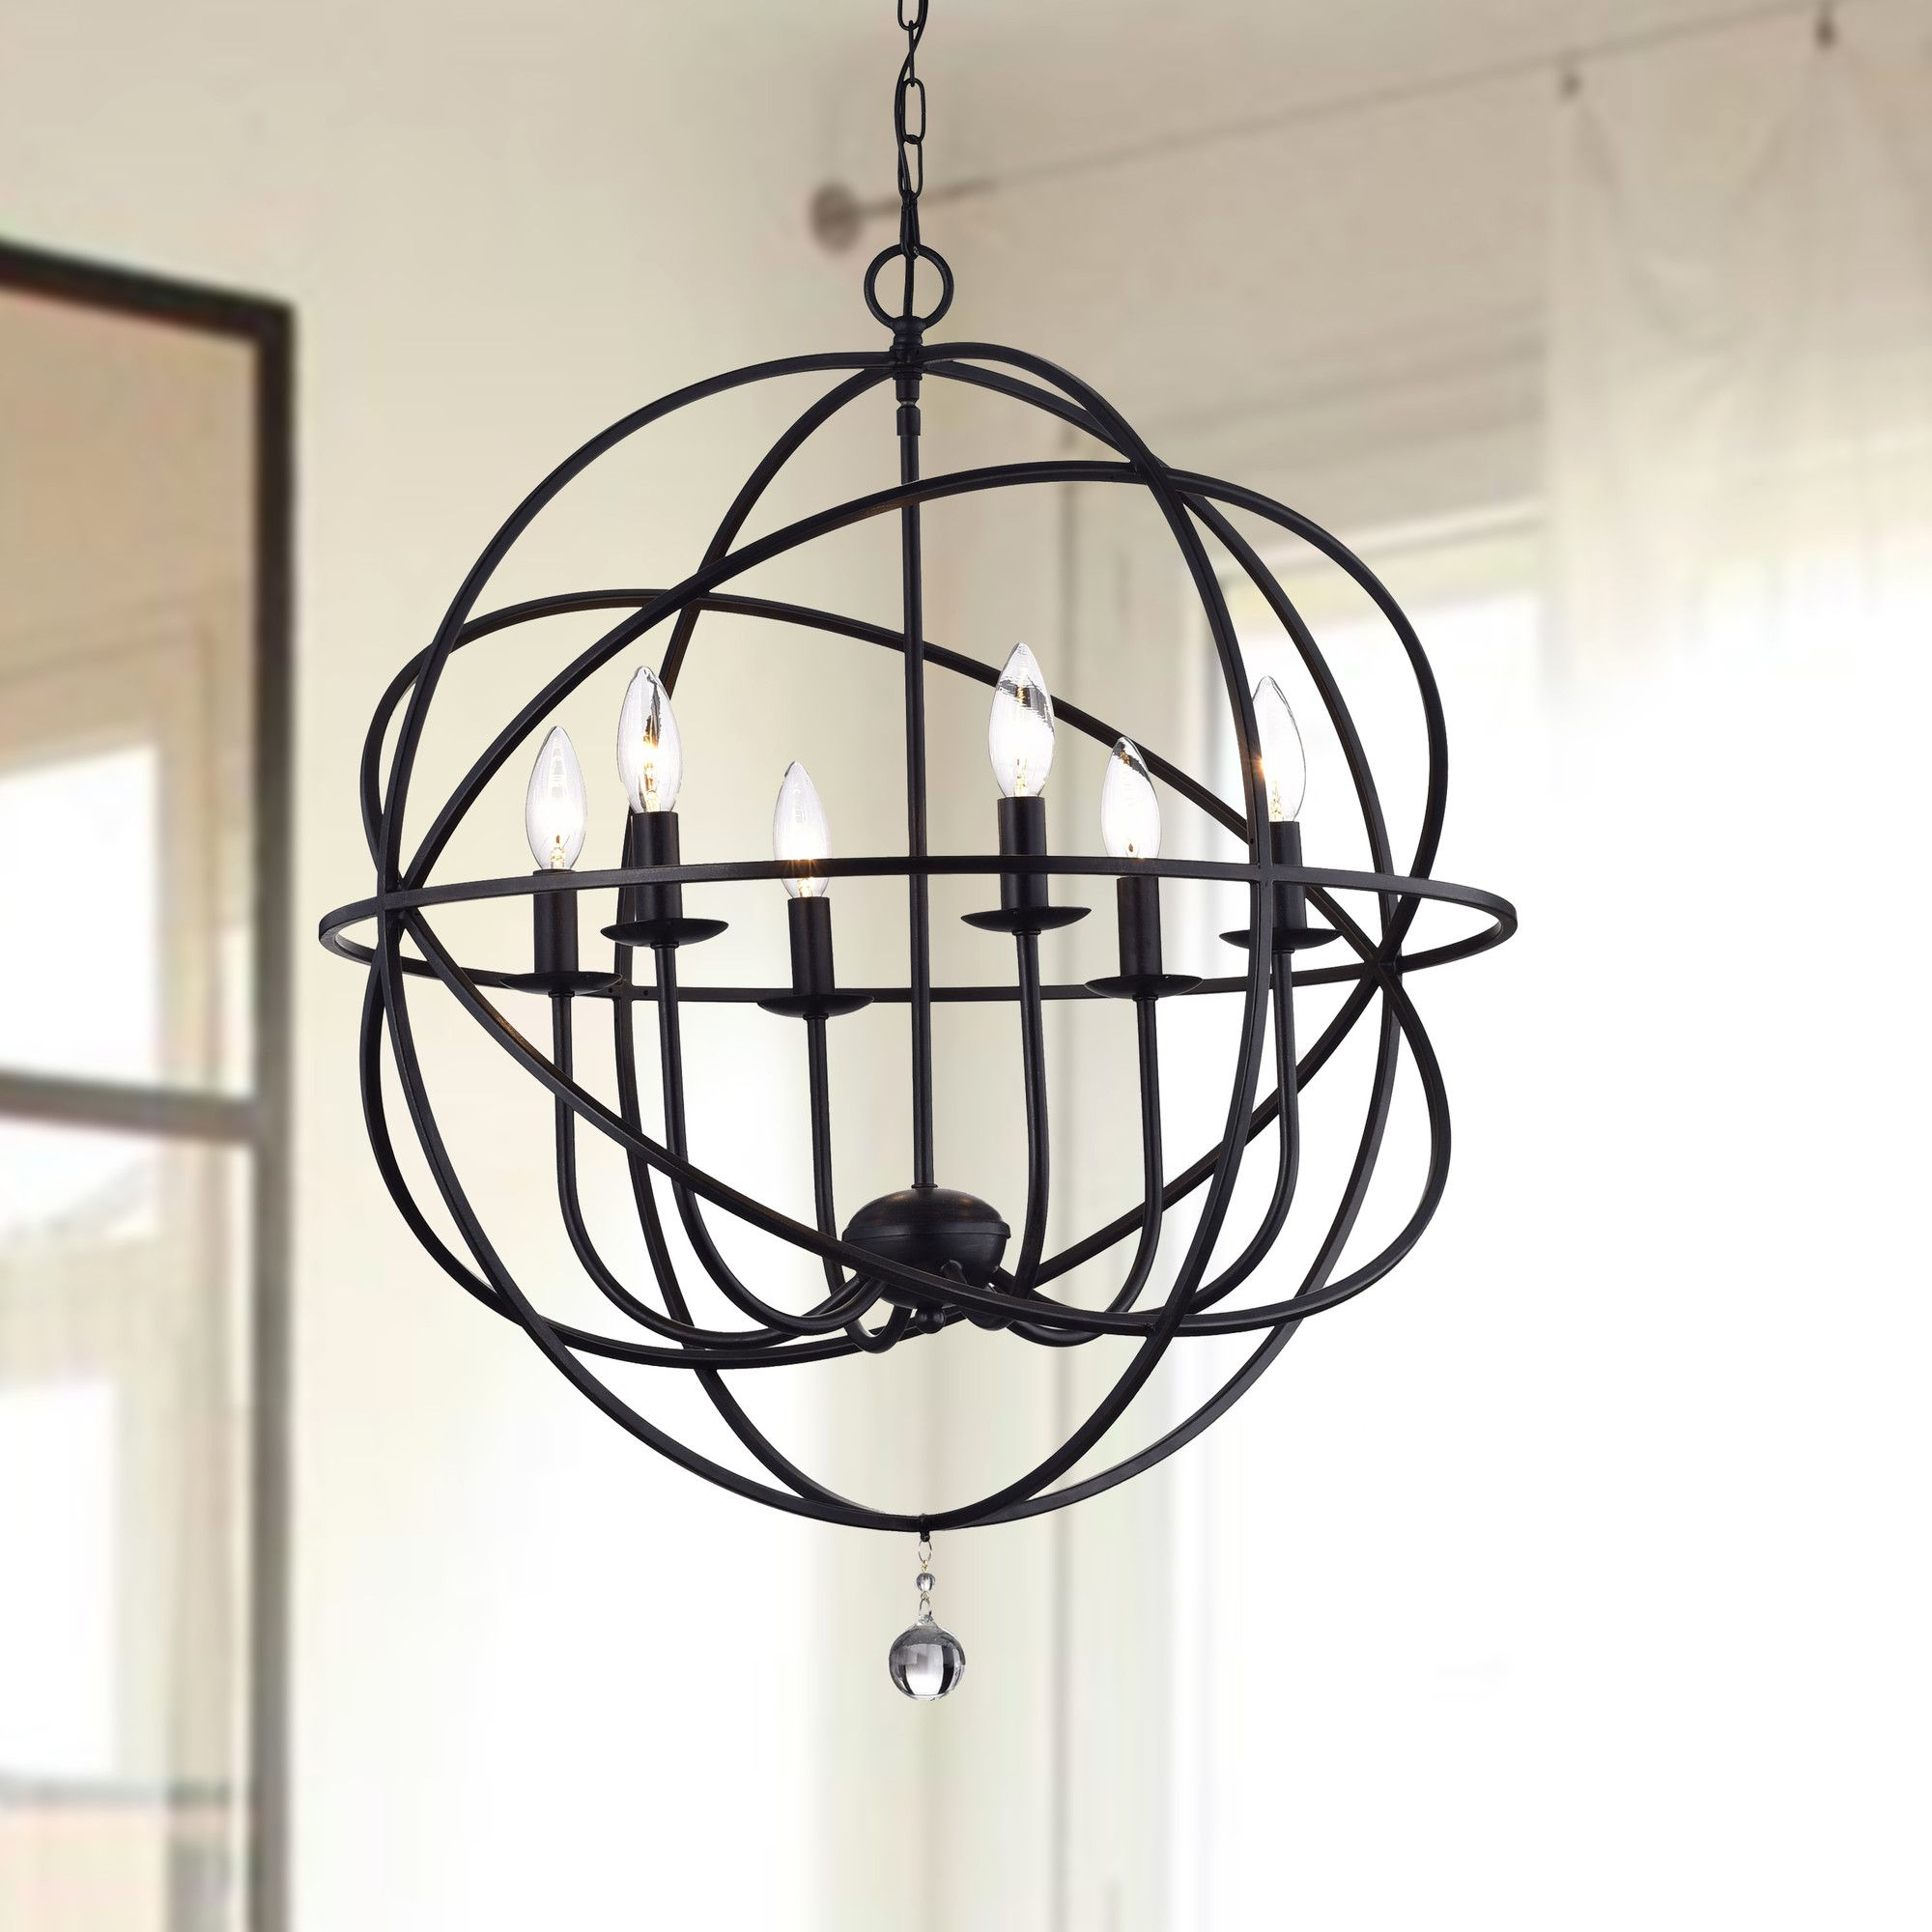 Gregoire 6 Light Globe Chandeliers With Regard To Current Lucia 6 Light Globe Pendant (Gallery 18 of 20)